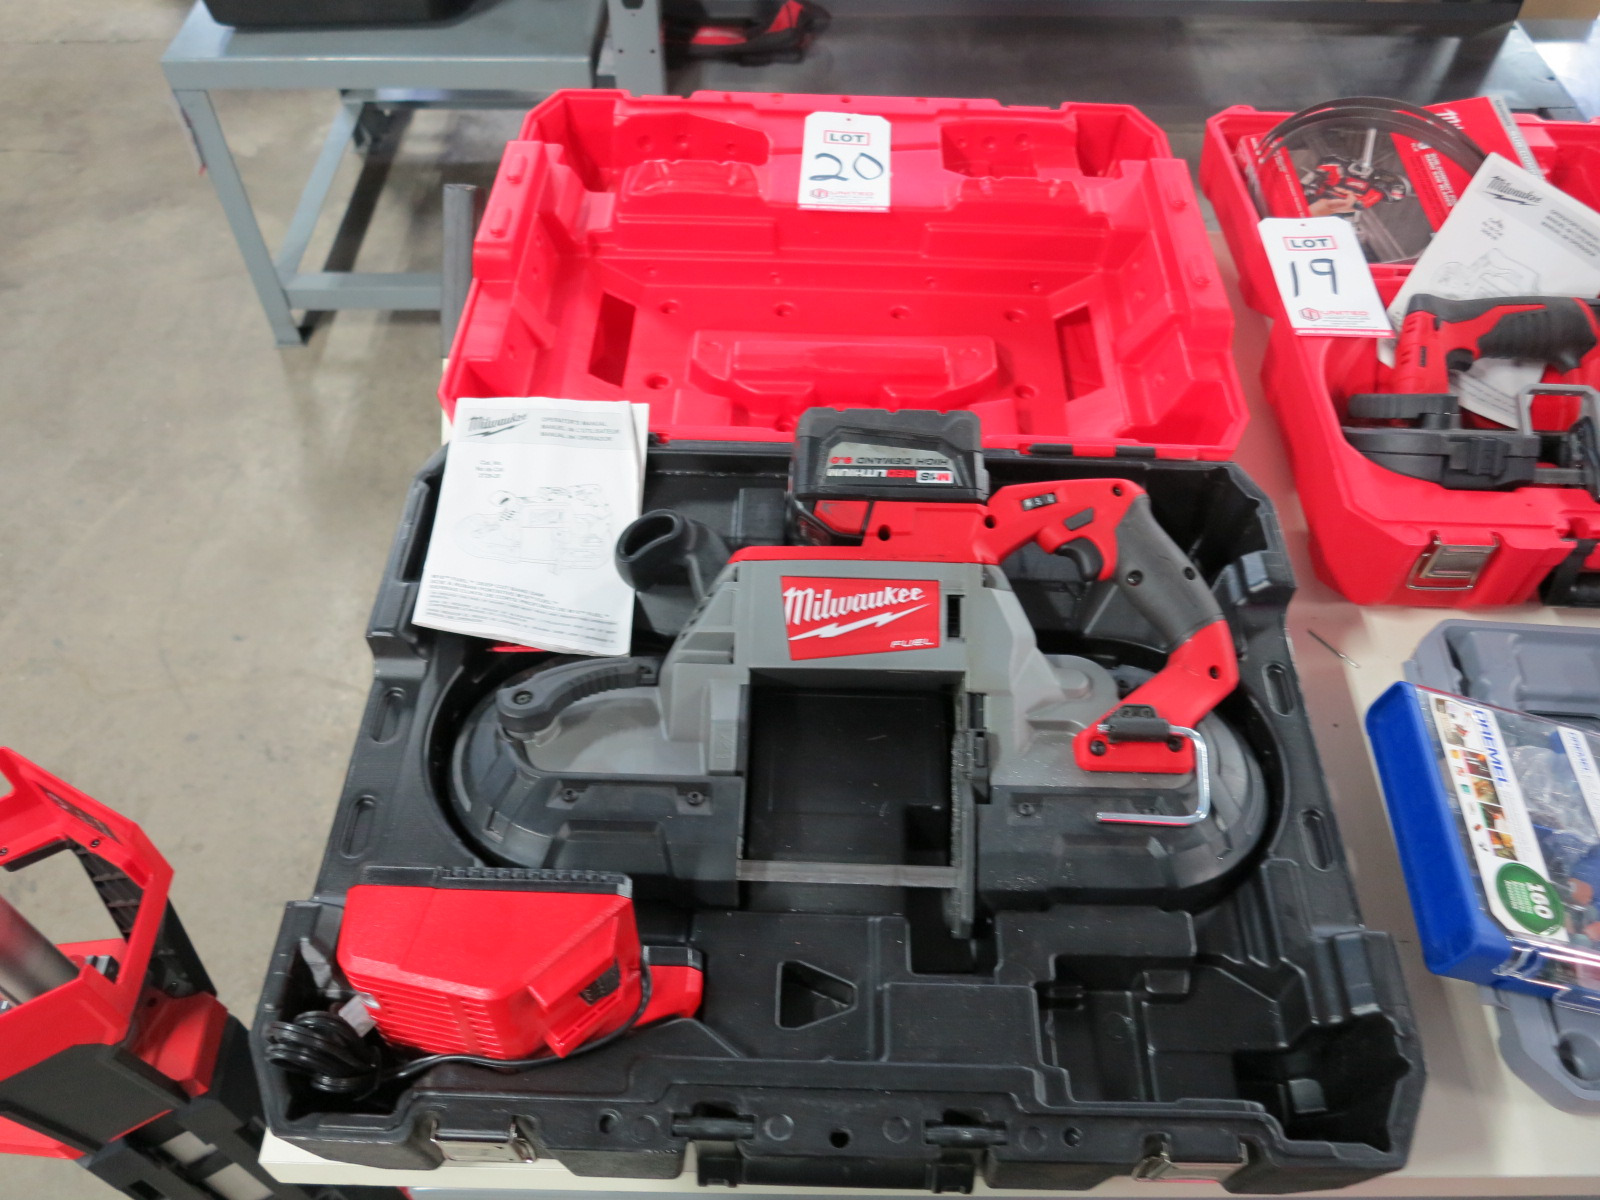 Lot 20 - MILWAUKEE M18 FUEL DEEP CUT BAND SAW, W/ BATTERY, CHARGER, CASE, CAT. NO. 2729-20, 18V